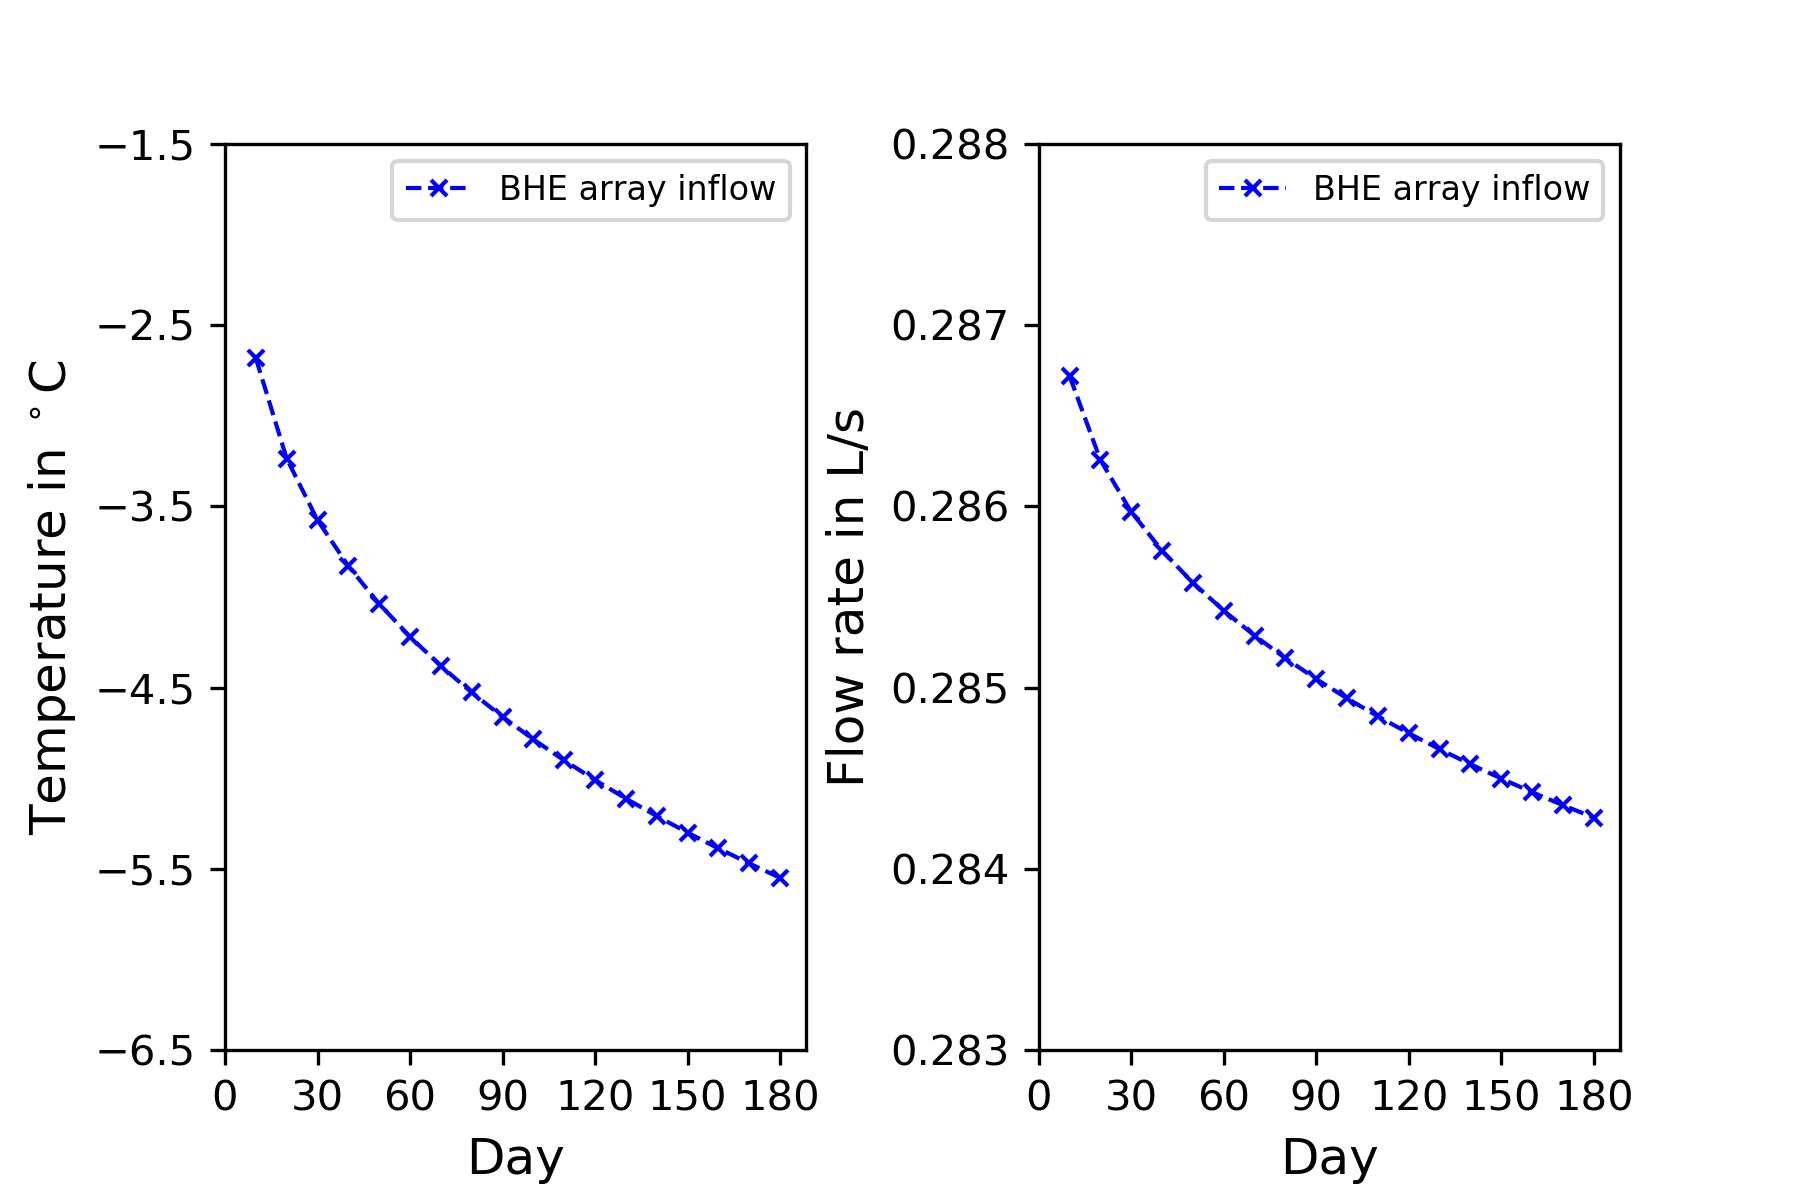 web/content/docs/benchmarks/heat-transport-bhe/3D_3BHEs_array_figures/Inflow_temperature_and_flow_rate.png